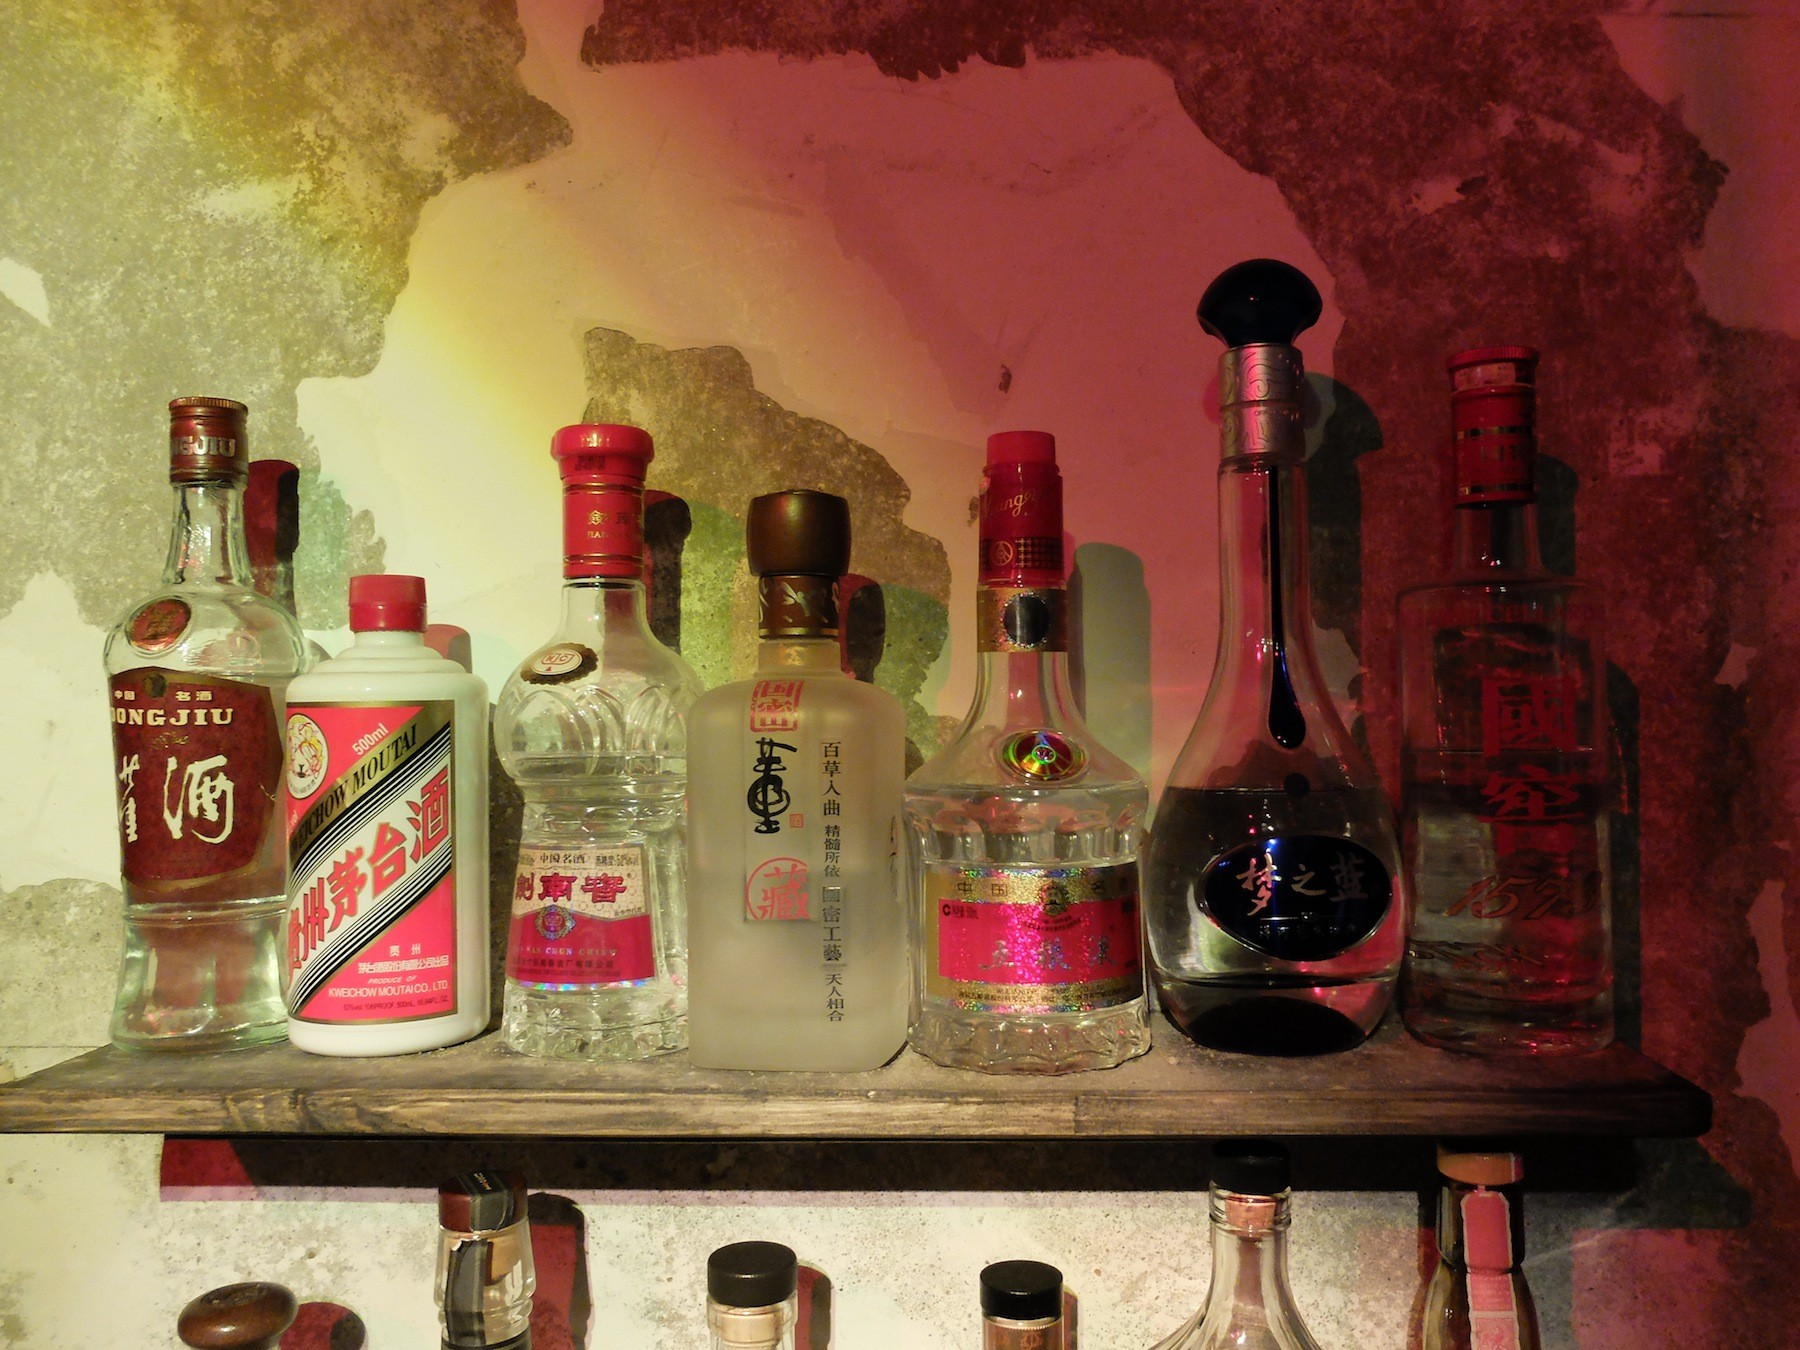 Expensive 'top shelf' baijiu